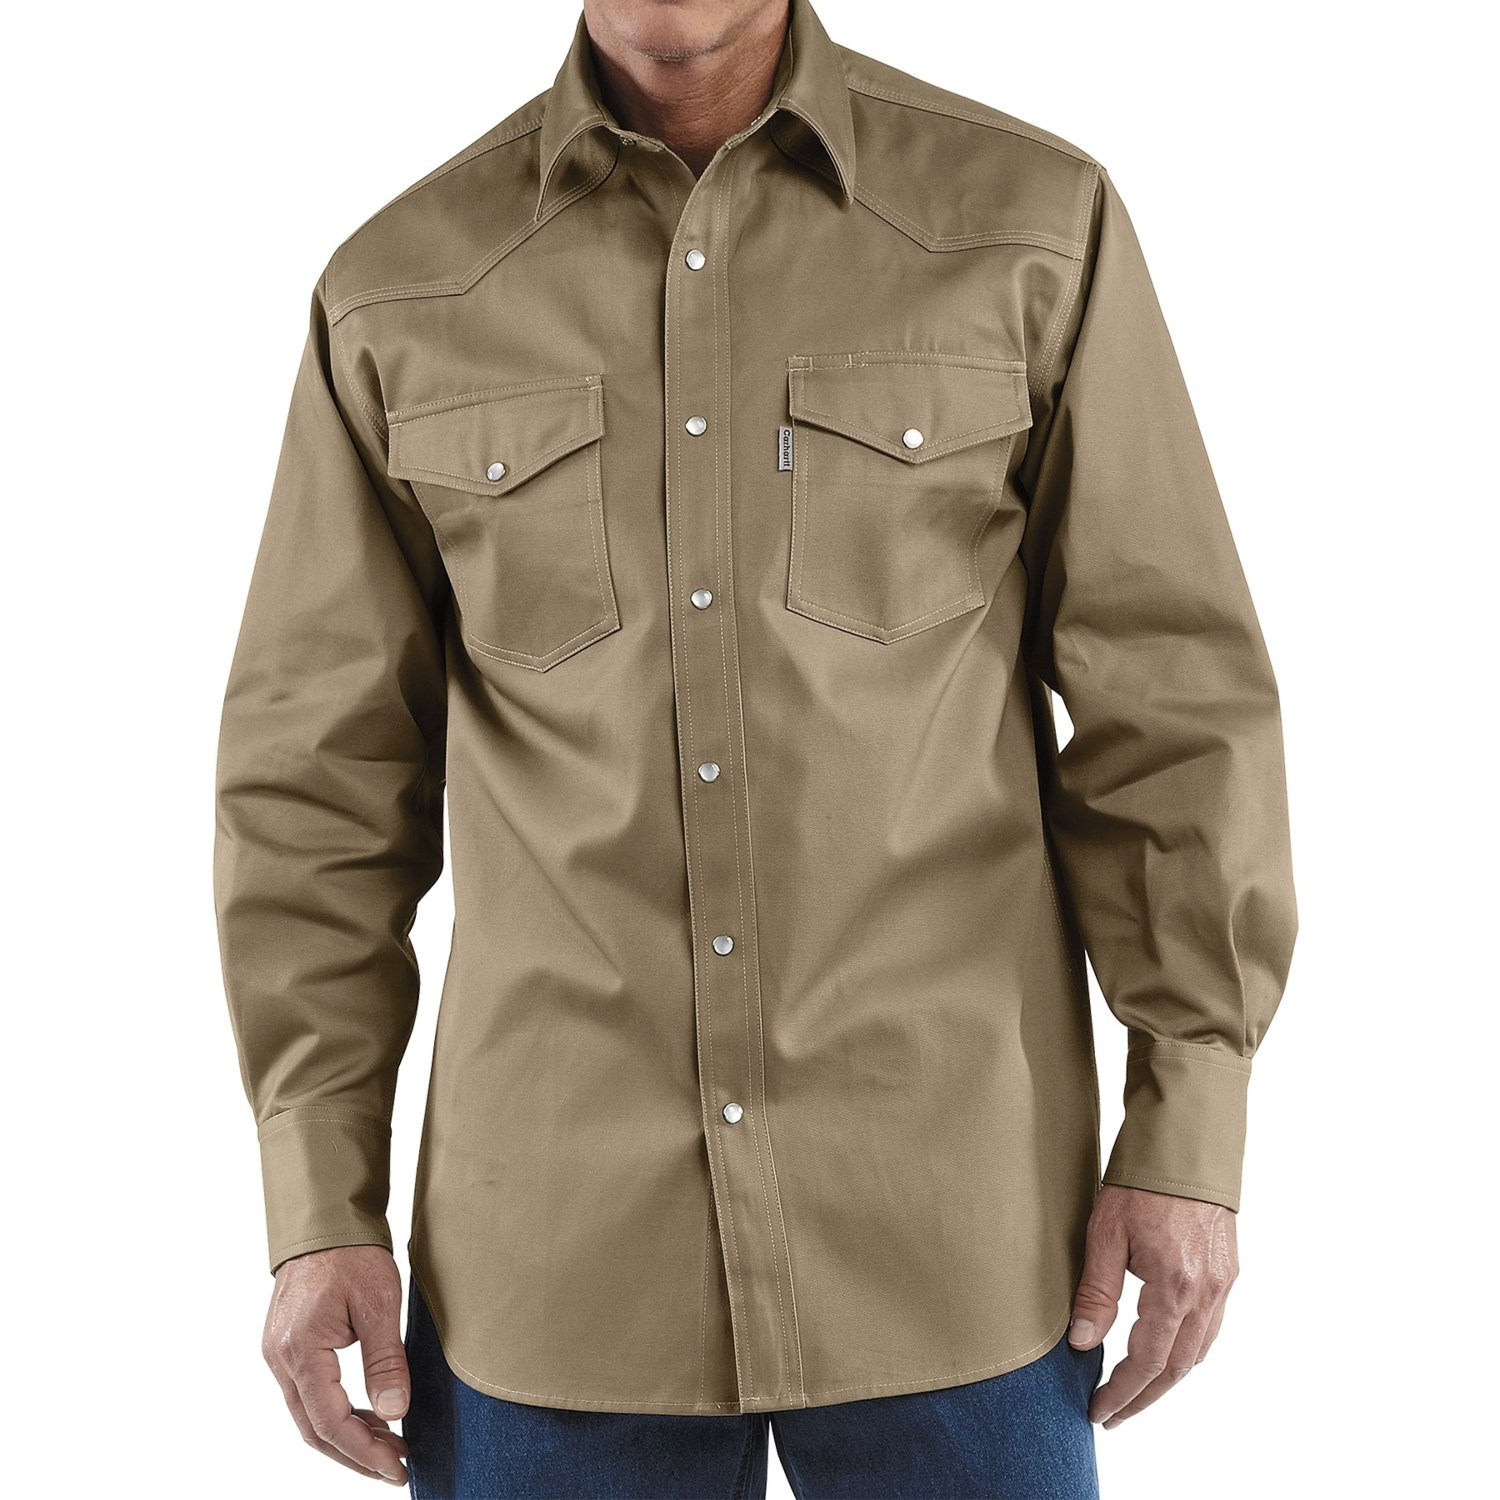 Carhartt snap front twill work shirt for tall men 4903m for Tall mens work shirts